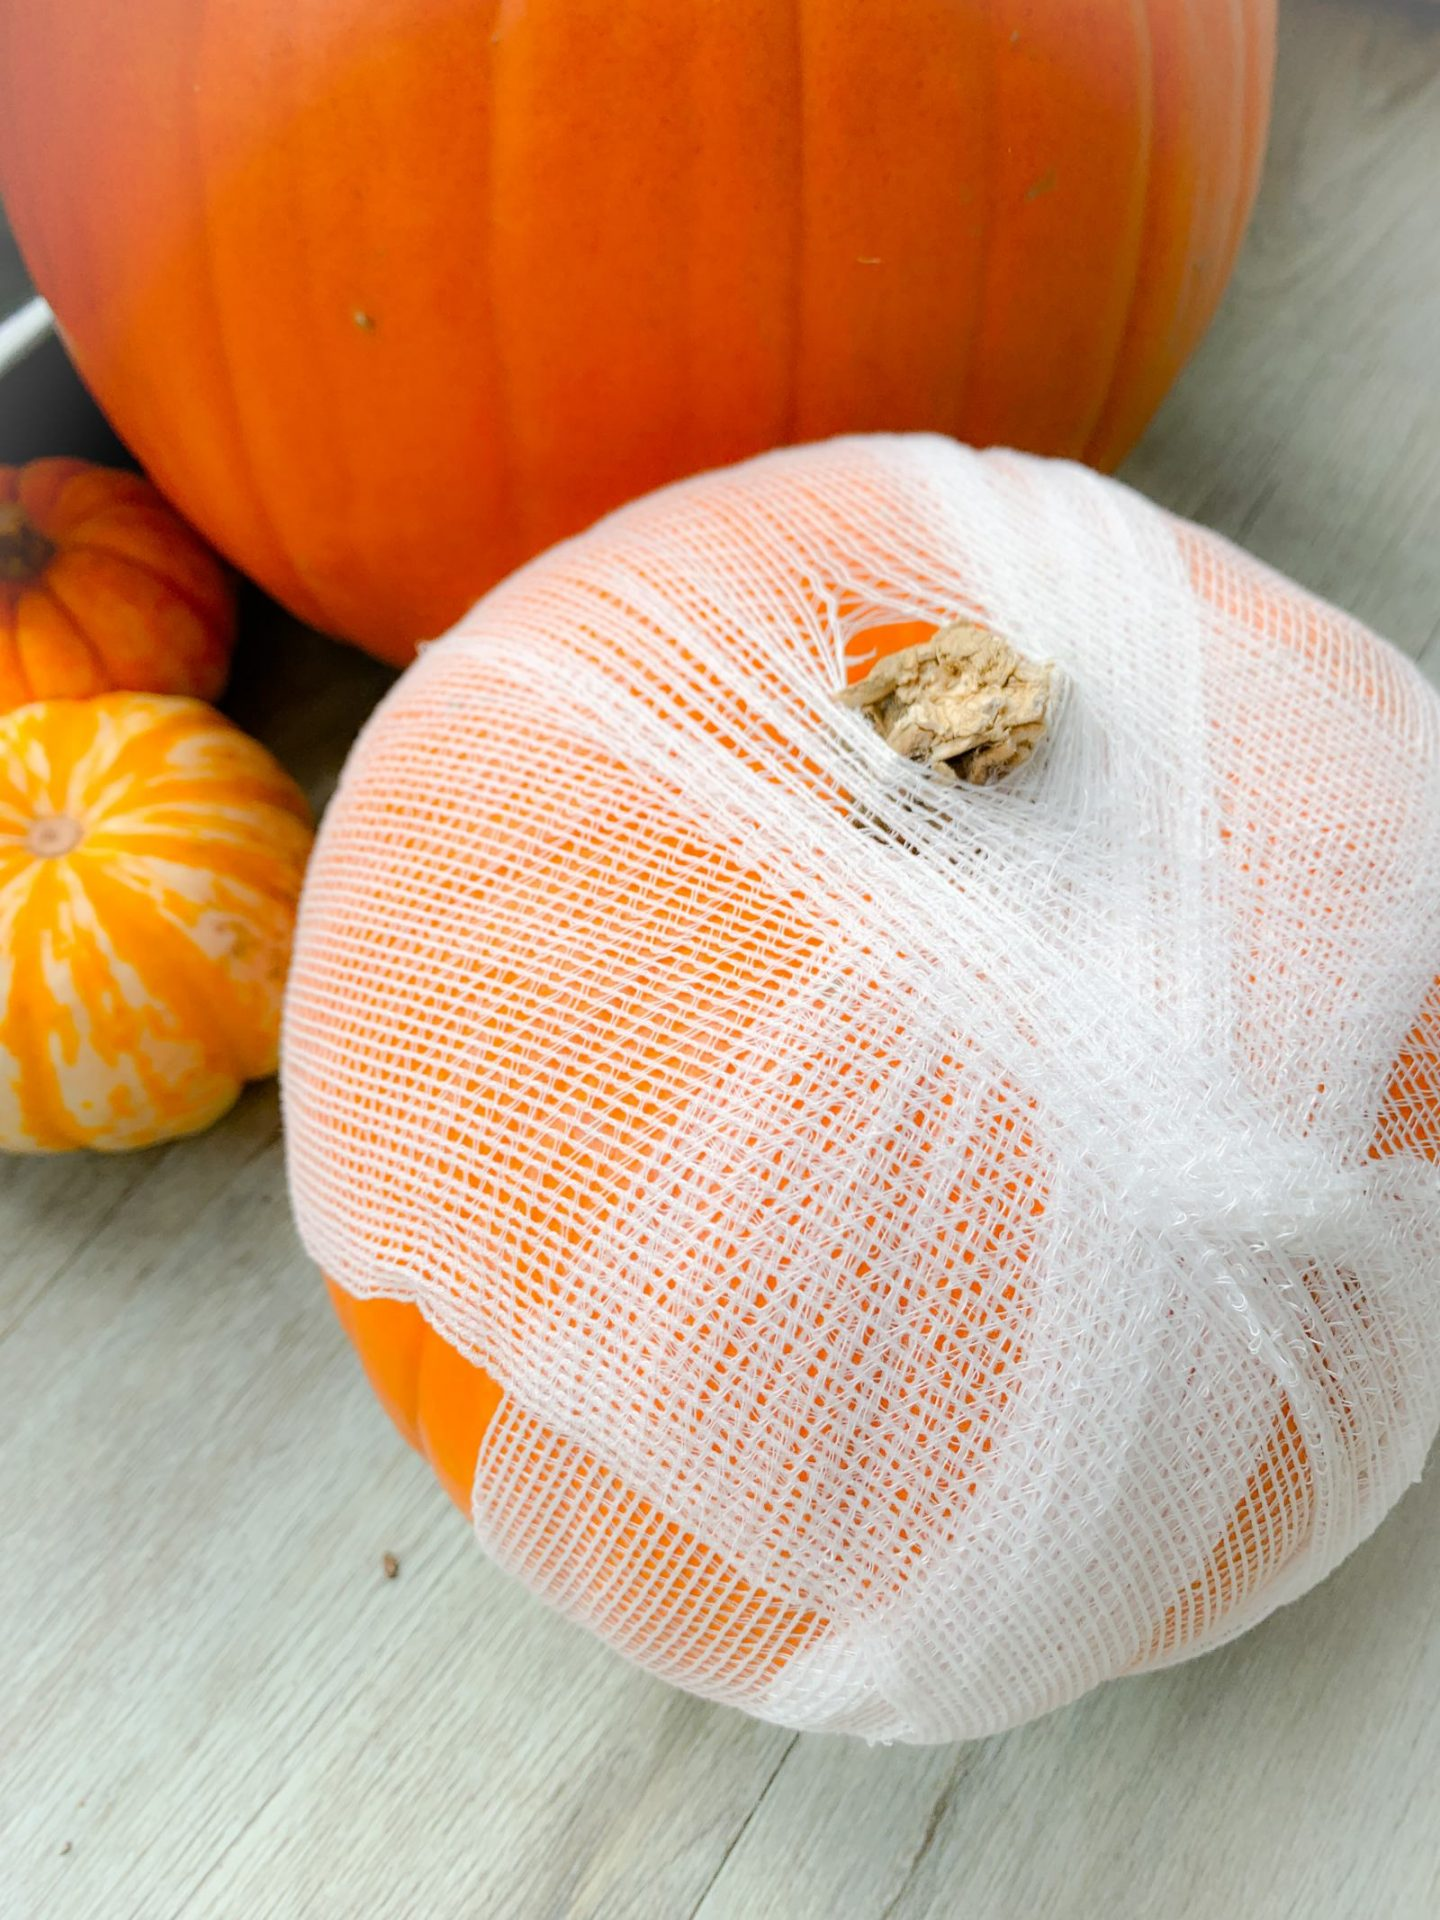 Mummified carve free pumpkin with spiders